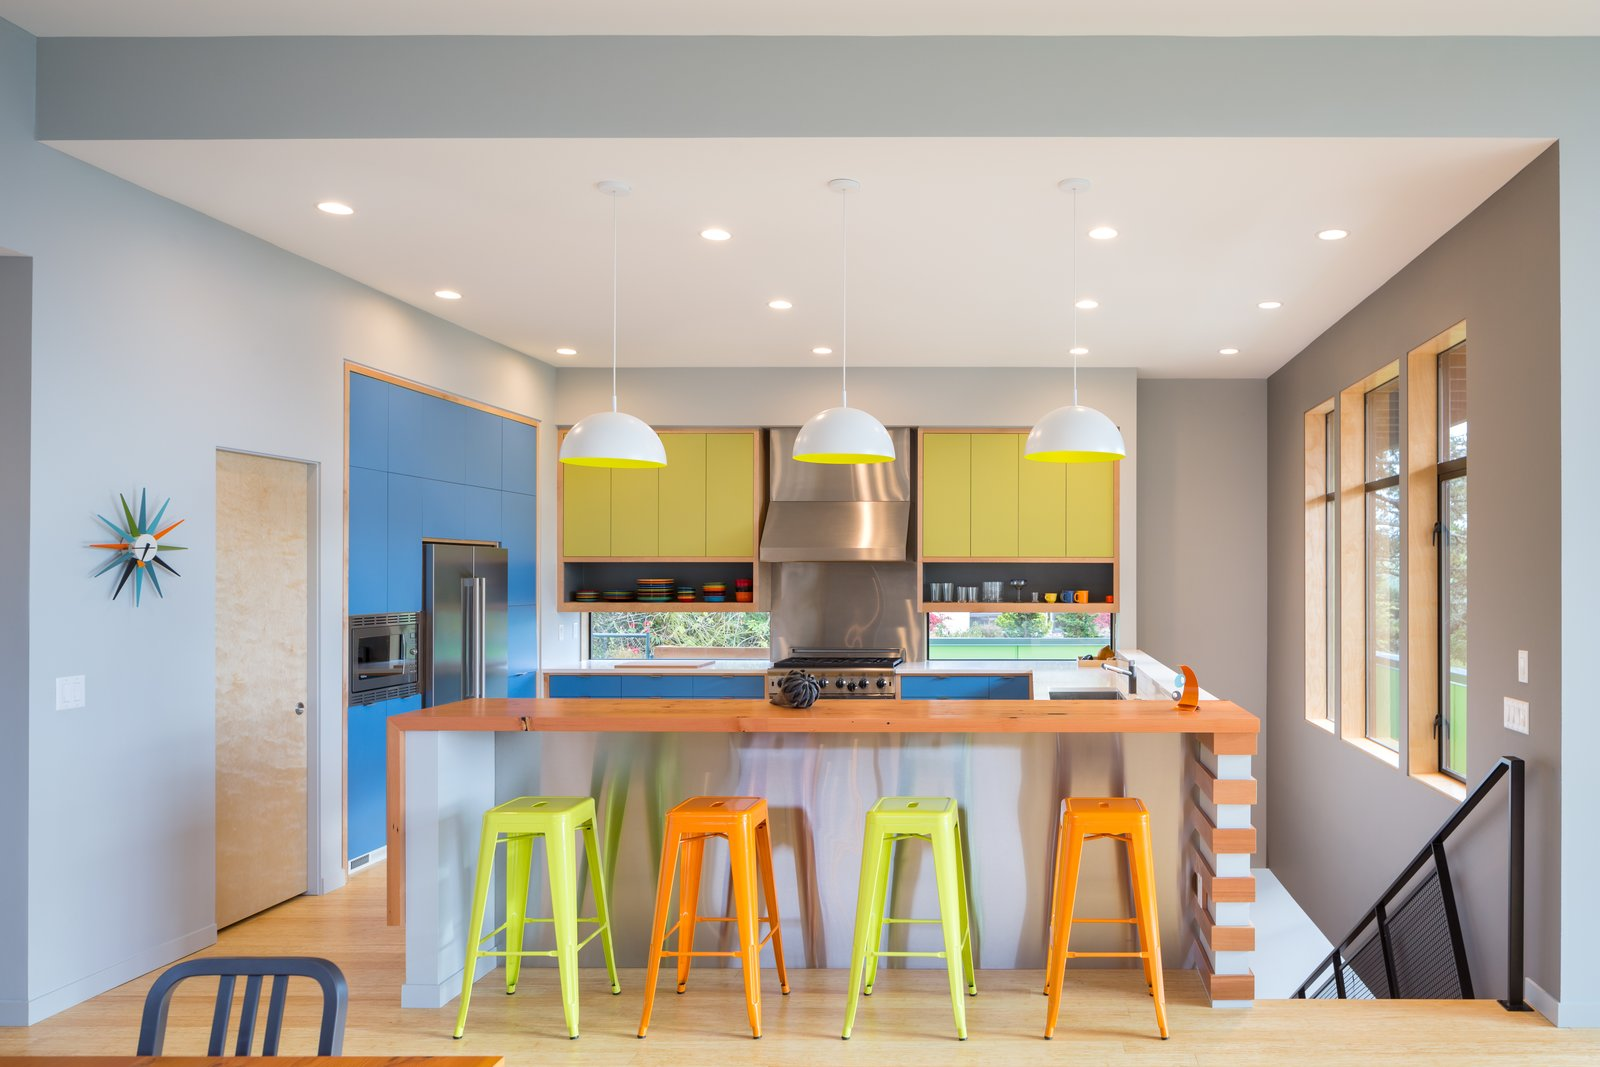 Kitchen, Quartzite Counter, Wood Counter, Colorful Cabinet, Laminate Cabinet, Medium Hardwood Floor, Pendant Lighting, Recessed Lighting, Refrigerator, Range, Range Hood, Microwave, and Undermount Sink Kitchen  Panavista Hill House by Steelhead Architecture